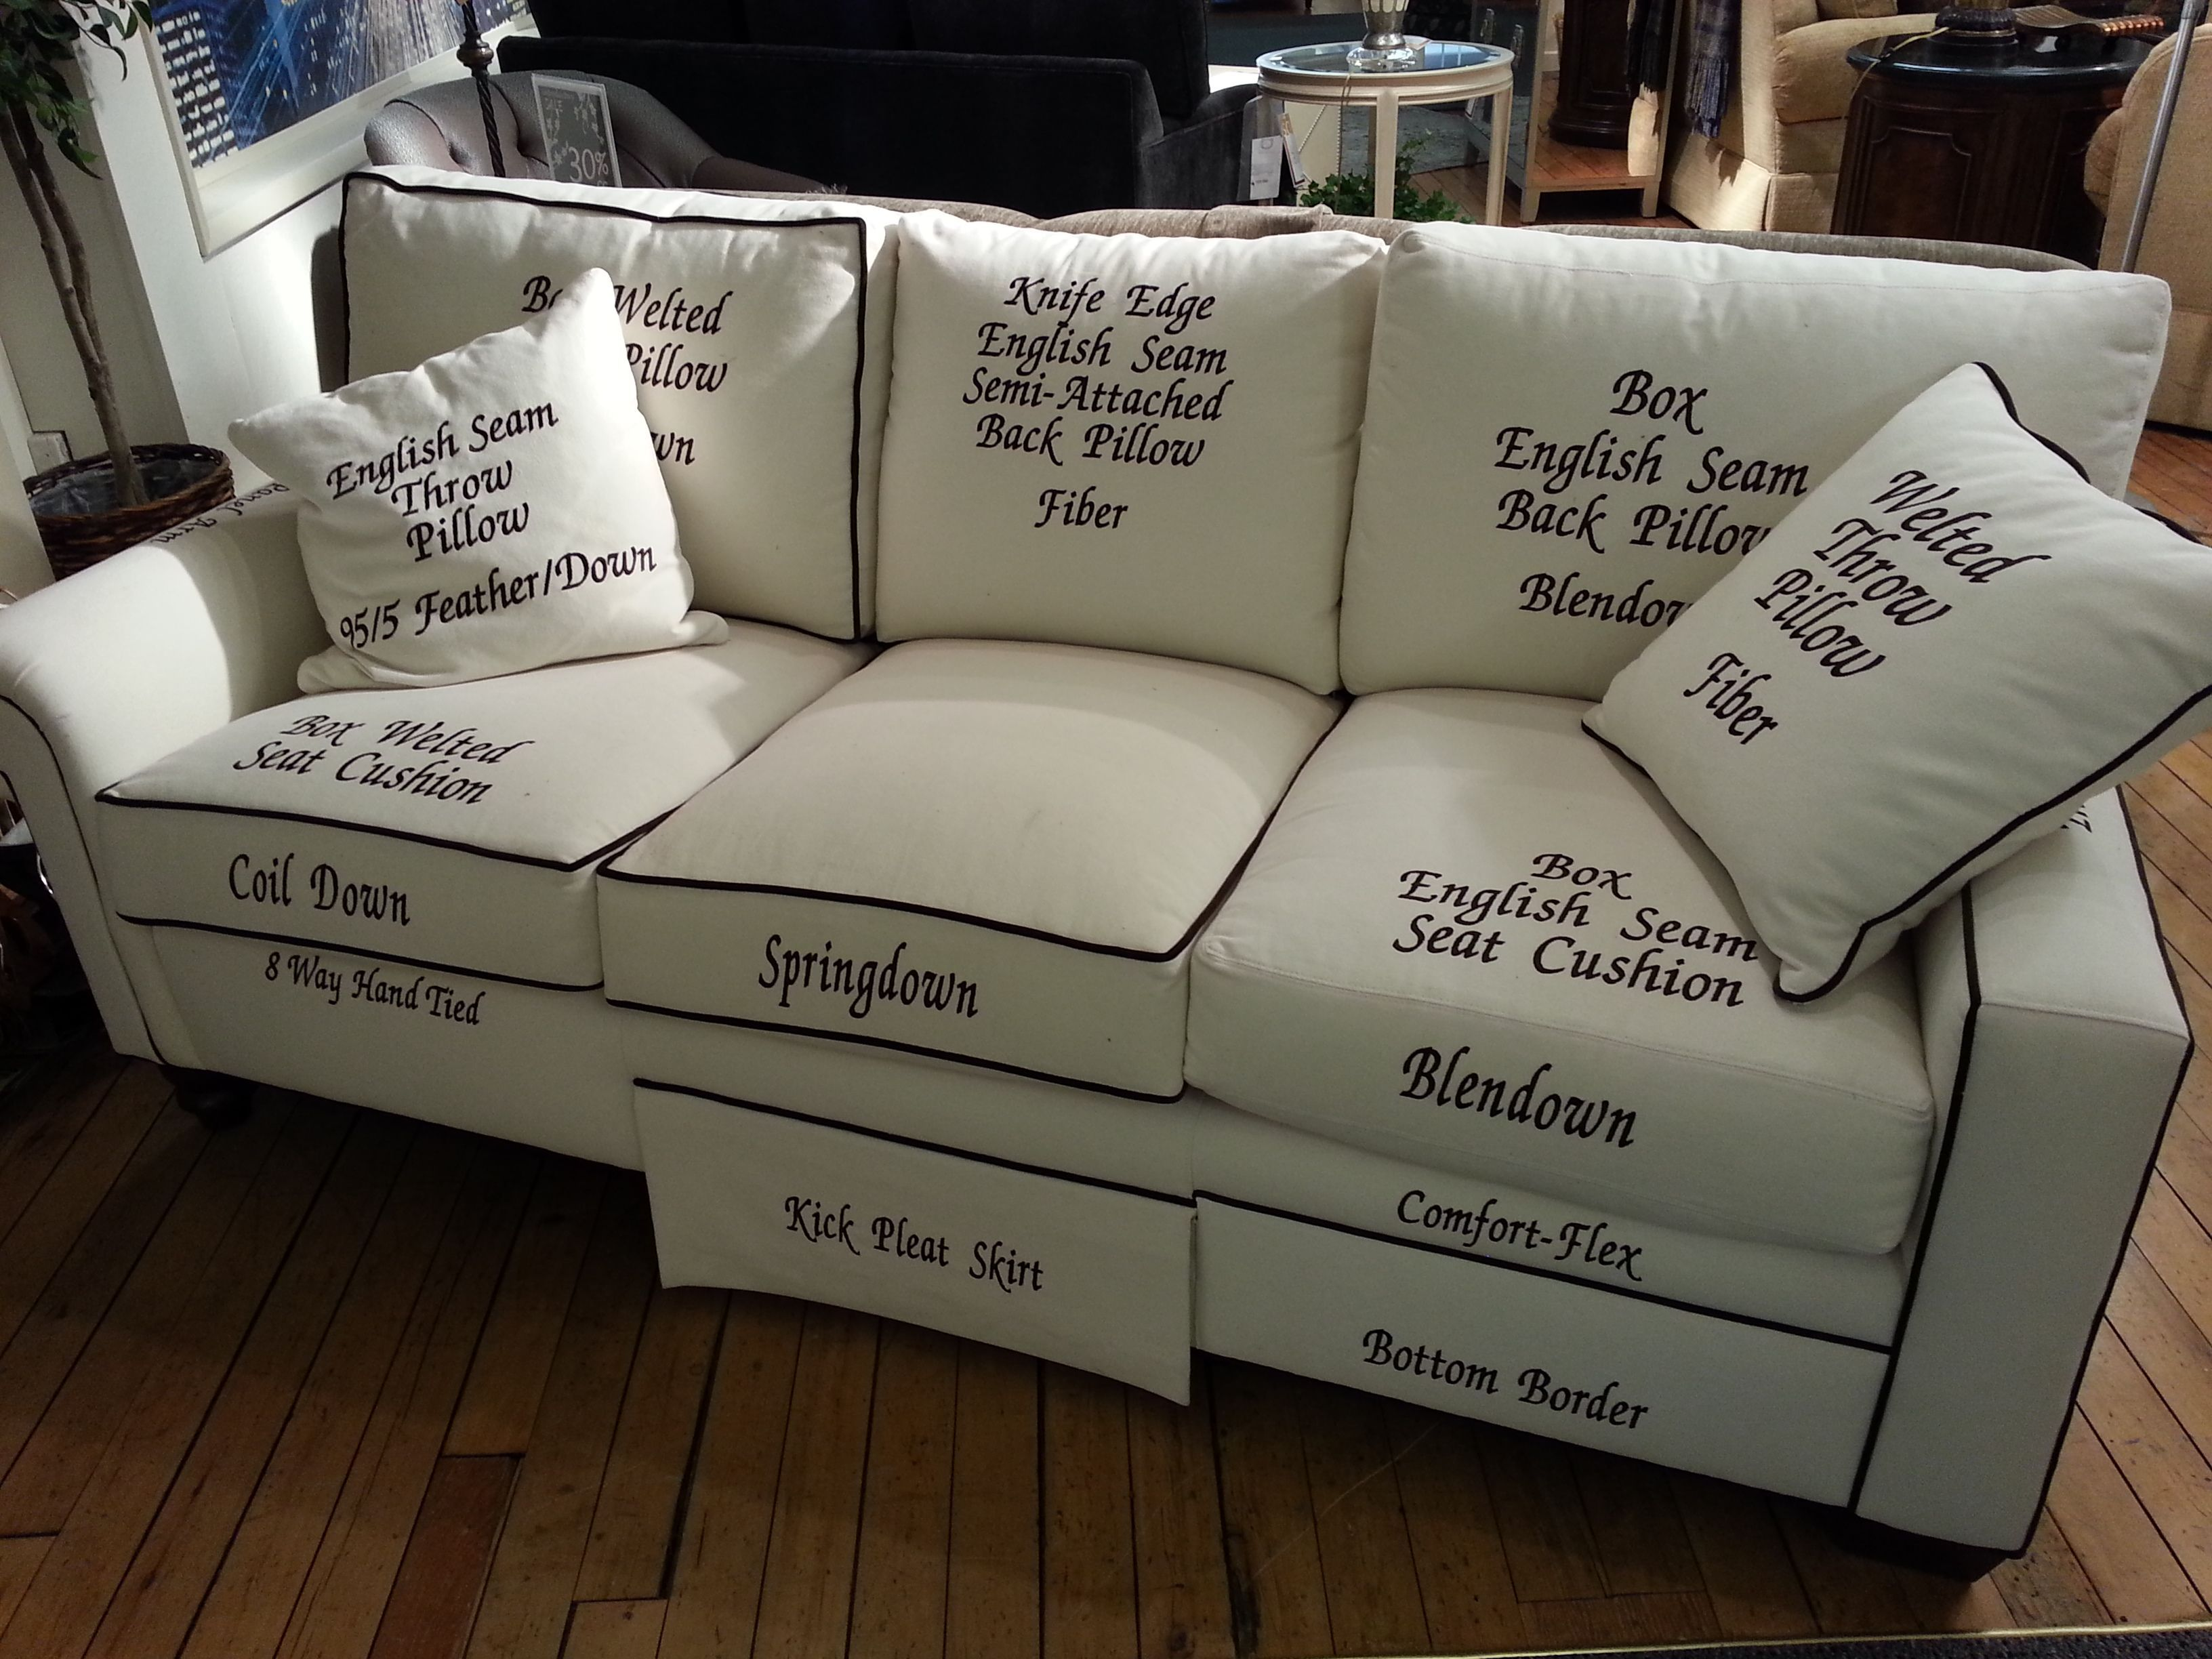 10 Most Simple Tips Upholstery Armchair Ideas Upholstery Nails Family Rooms Upholstery Seat Sofas Upholstery S Sofa Upholstery Couch Upholstery Upholstery Diy